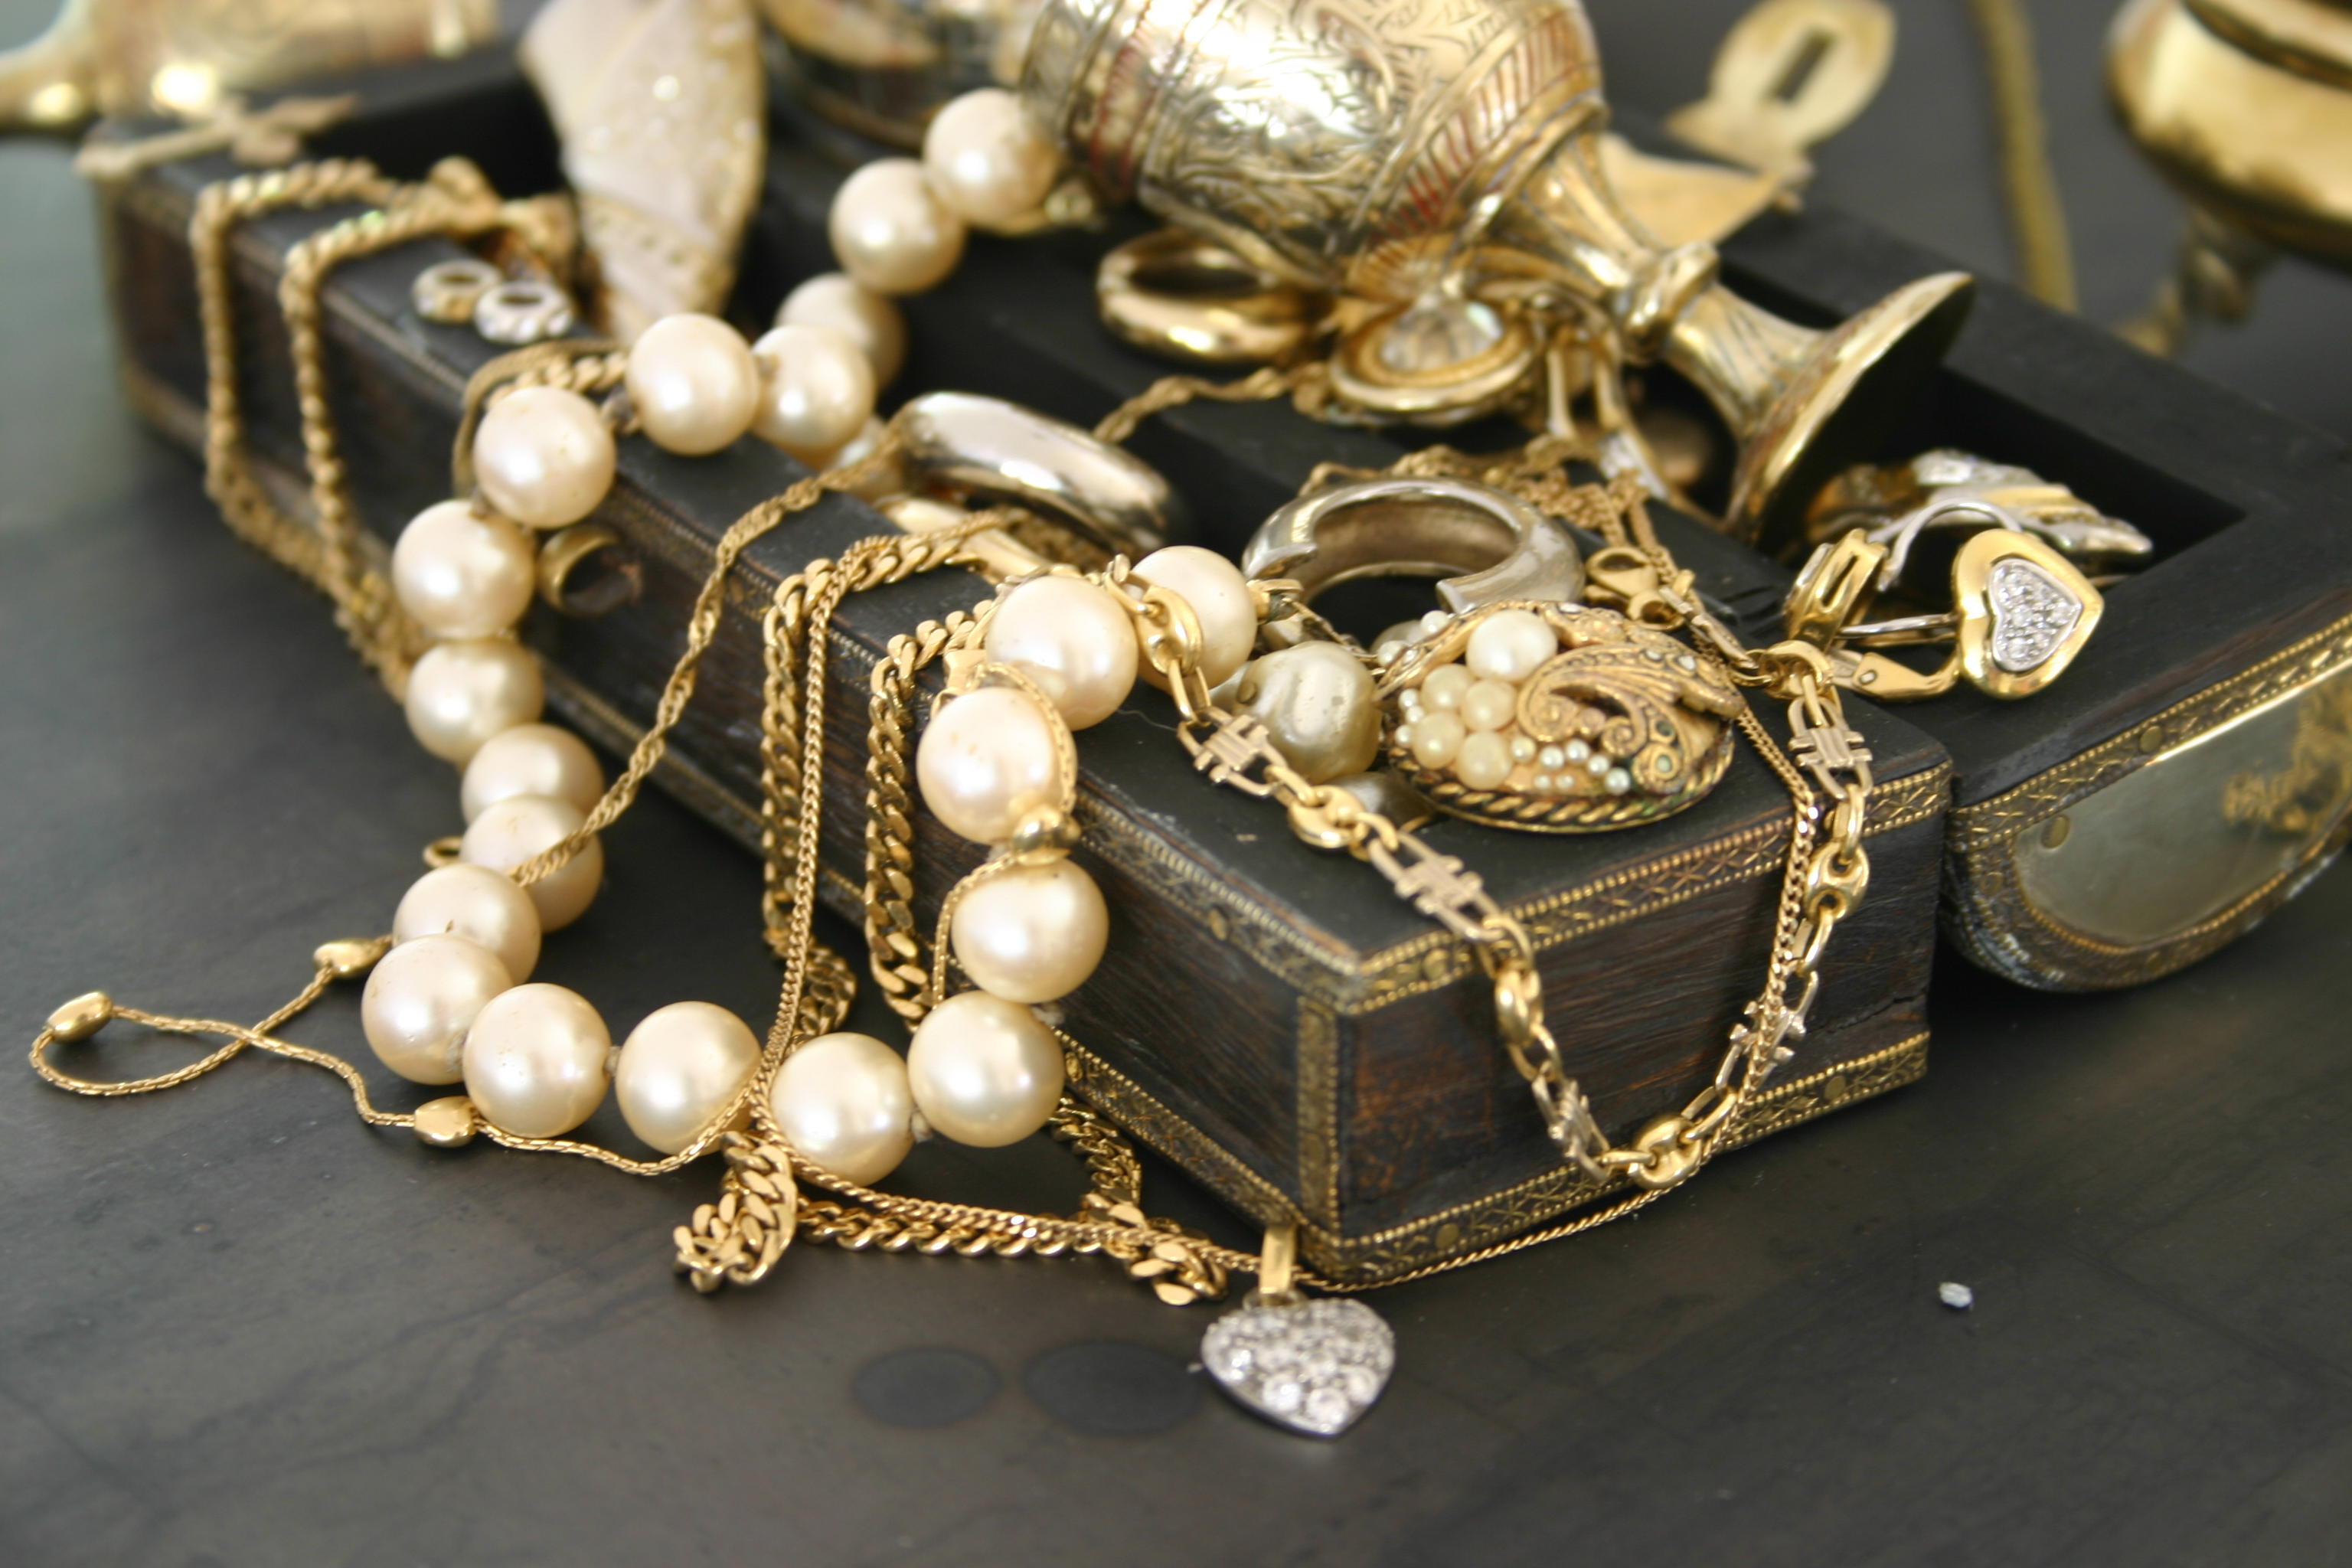 Jewelry laying over an indian jewelry box.See similar pictures: Jewelry: